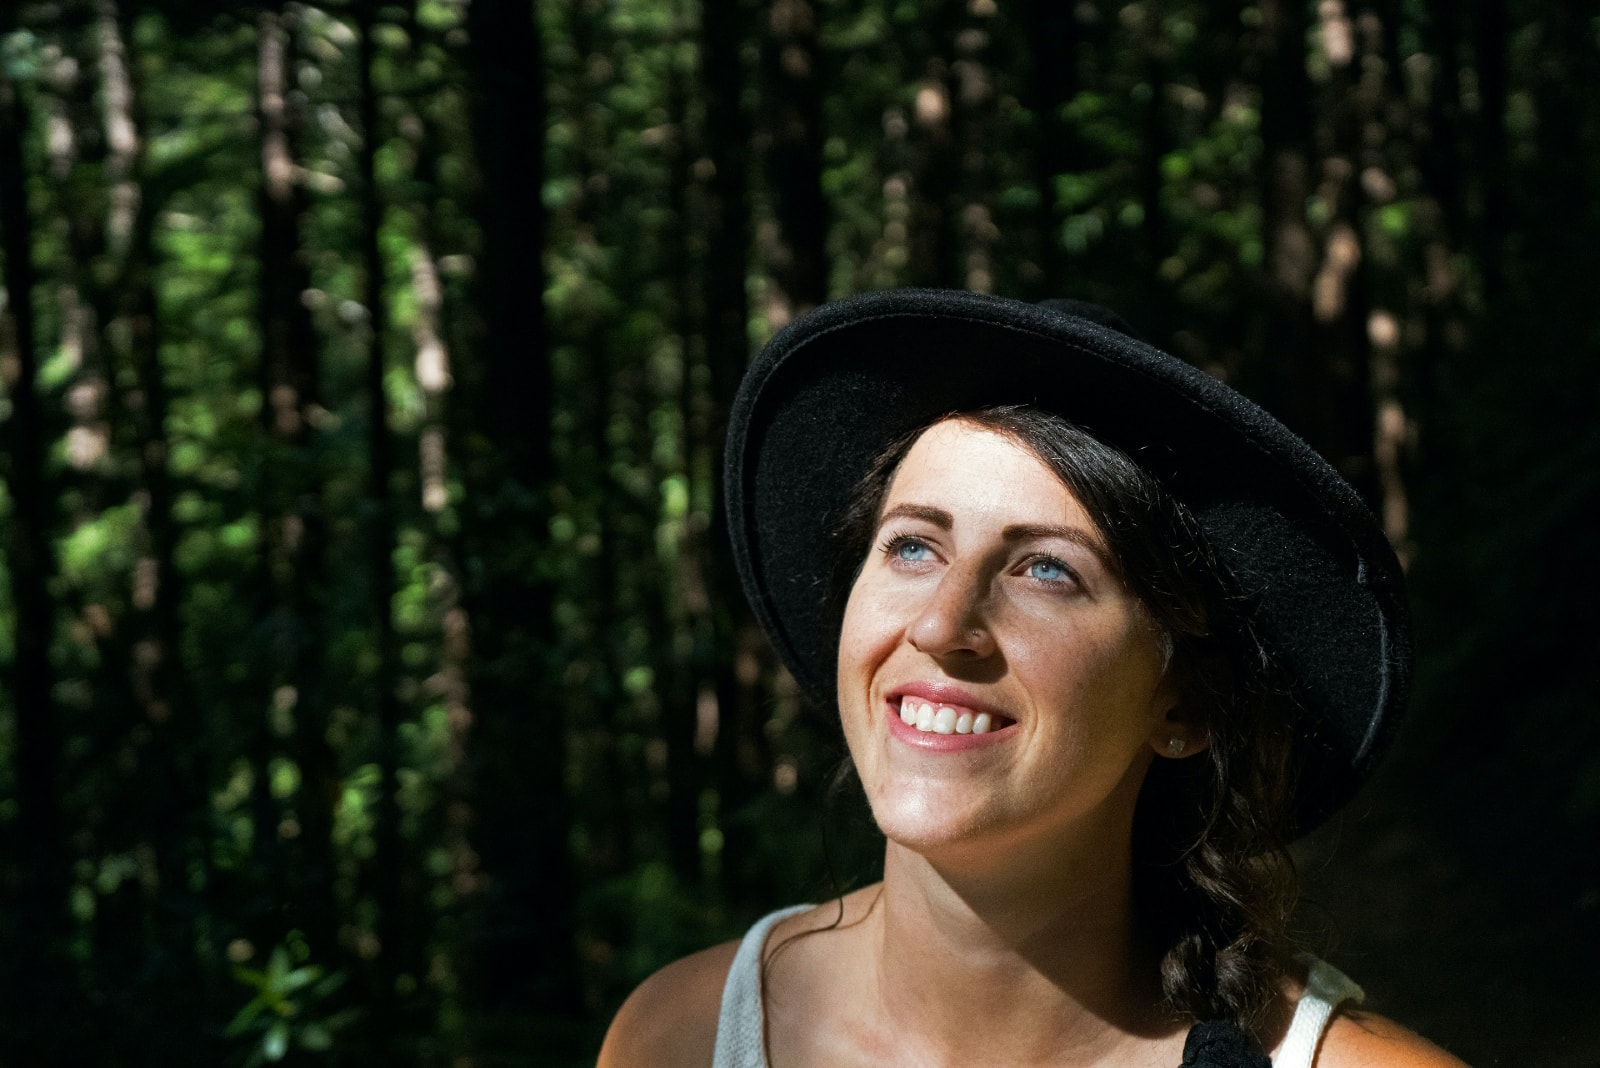 woman with black hat smiling in forest